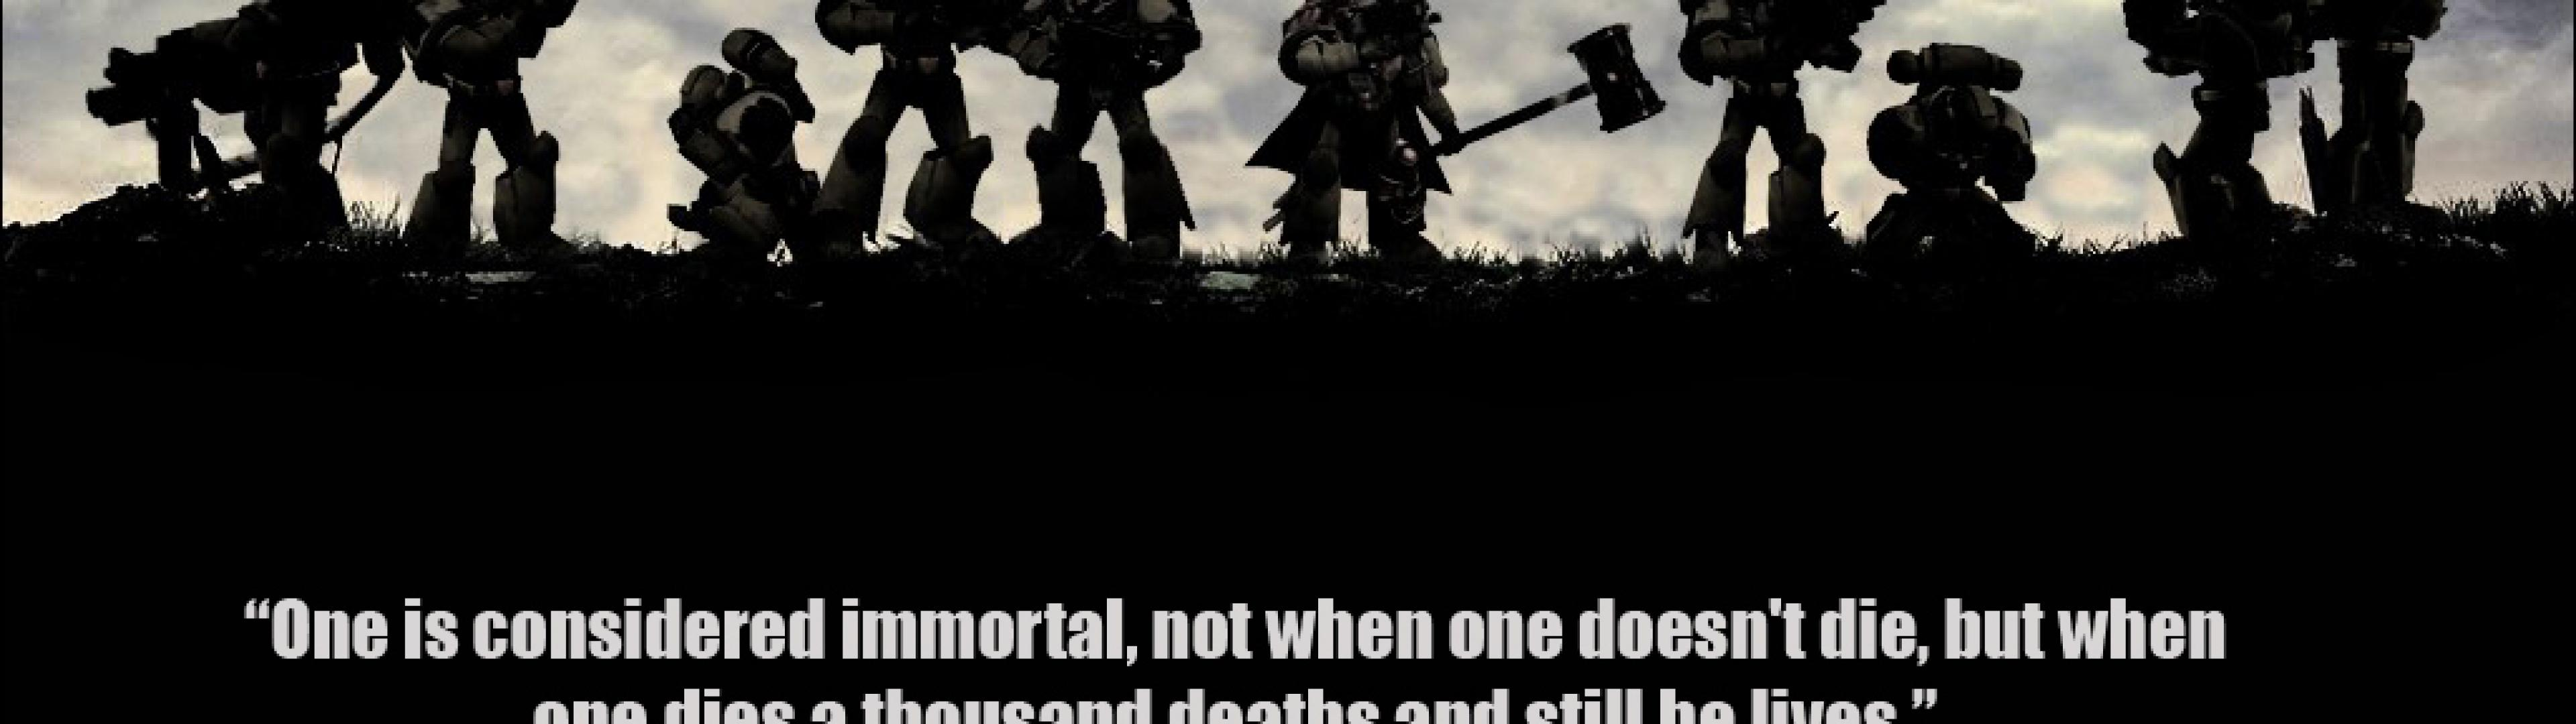 band of brothers imperial fists warhammer death korps HD Wallpaper of 3840x1080